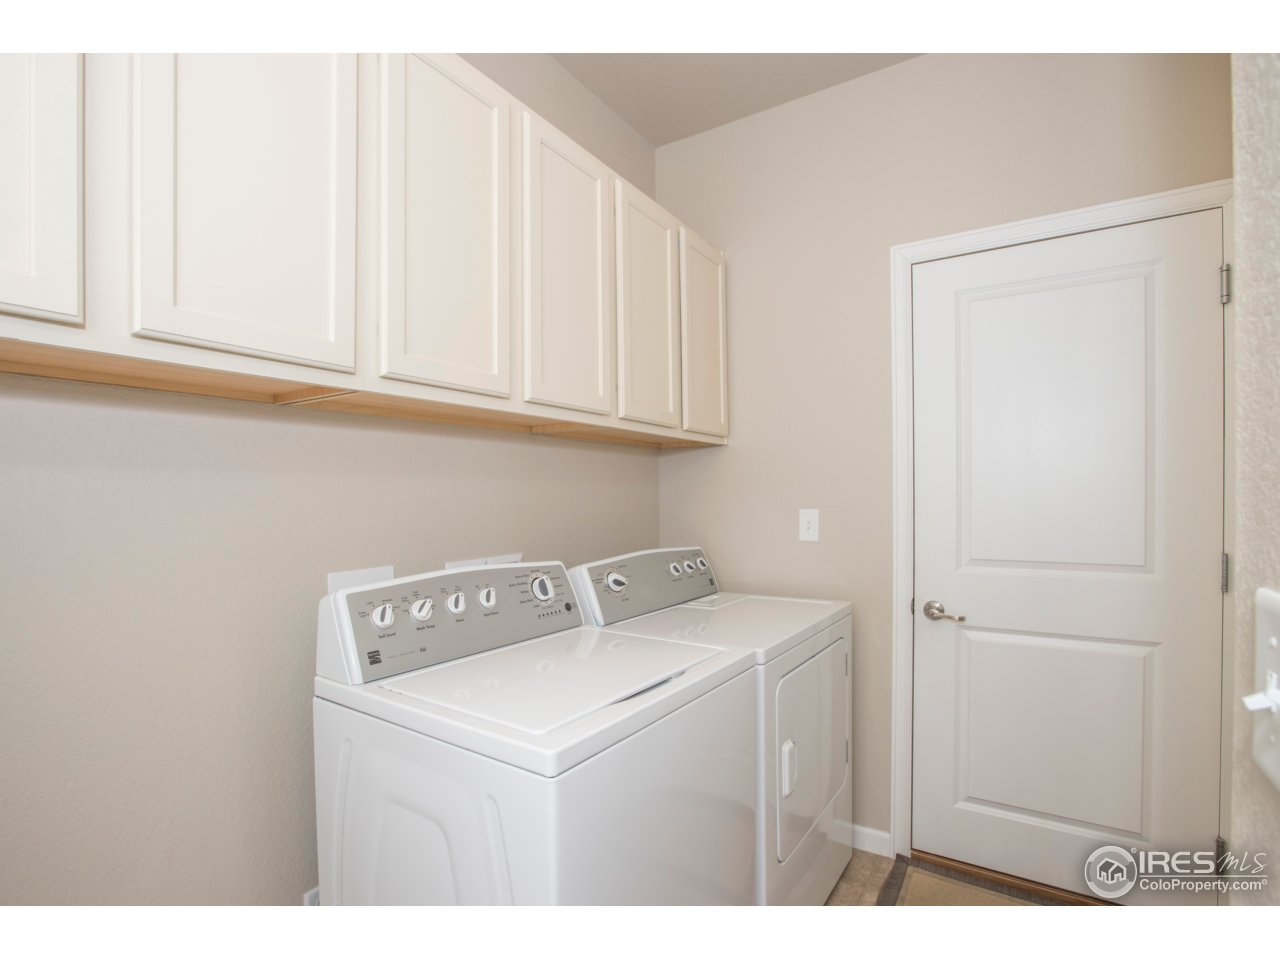 Enjoy plenty of cabinet space in your laundry room